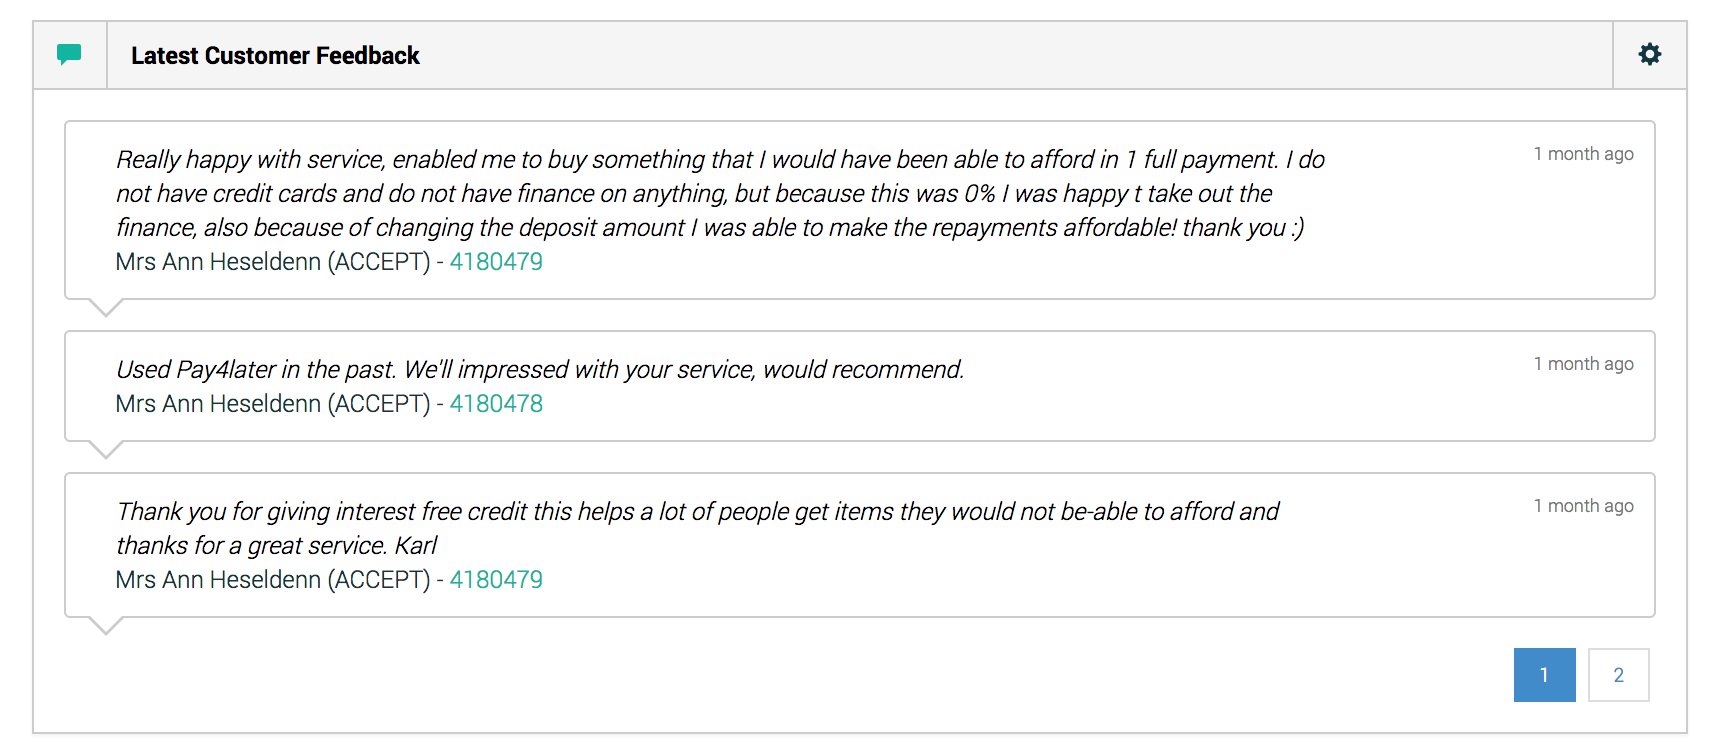 Latest Customer Feedback widget